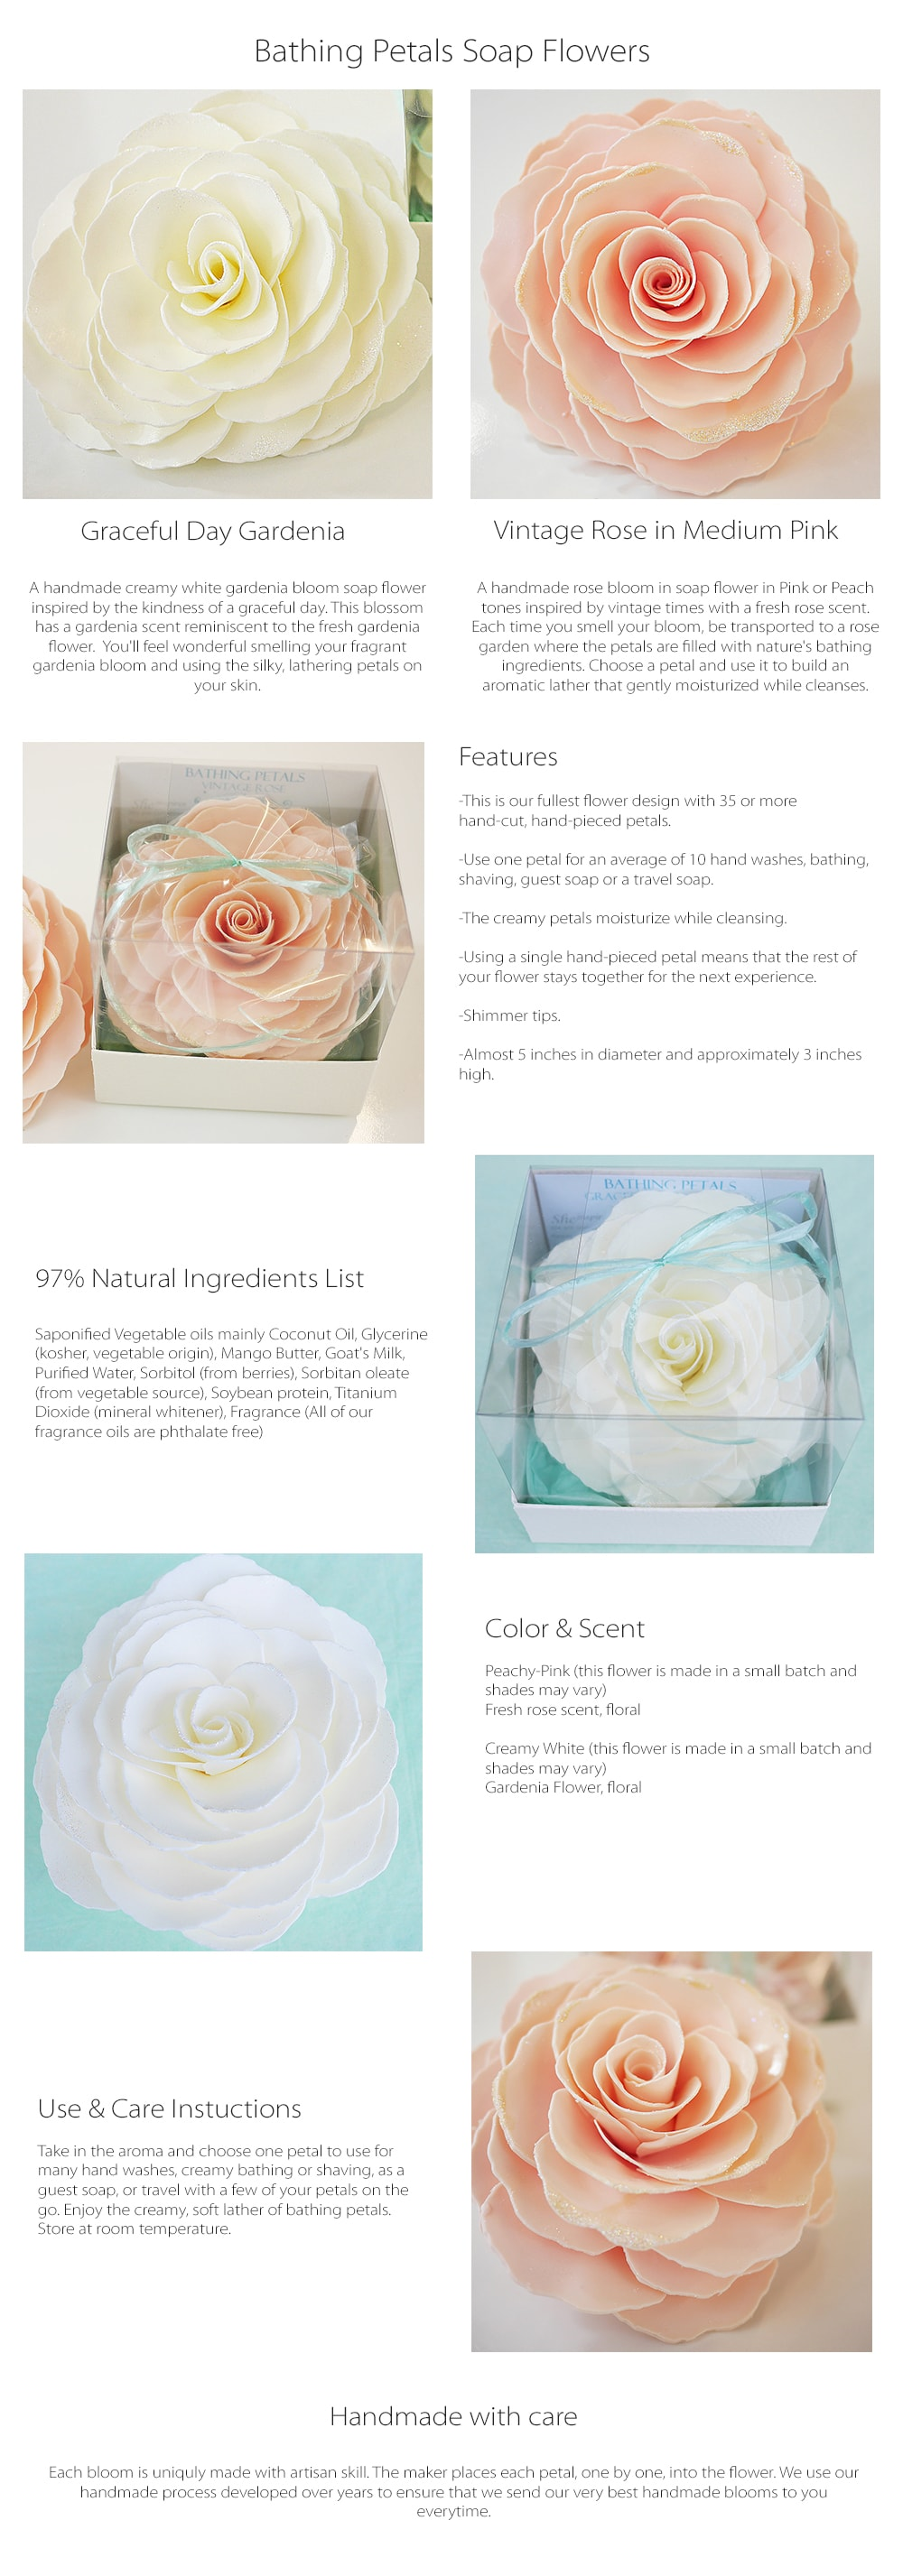 Luminous Rose Soap Surprising Gift For Your Loved Ones!